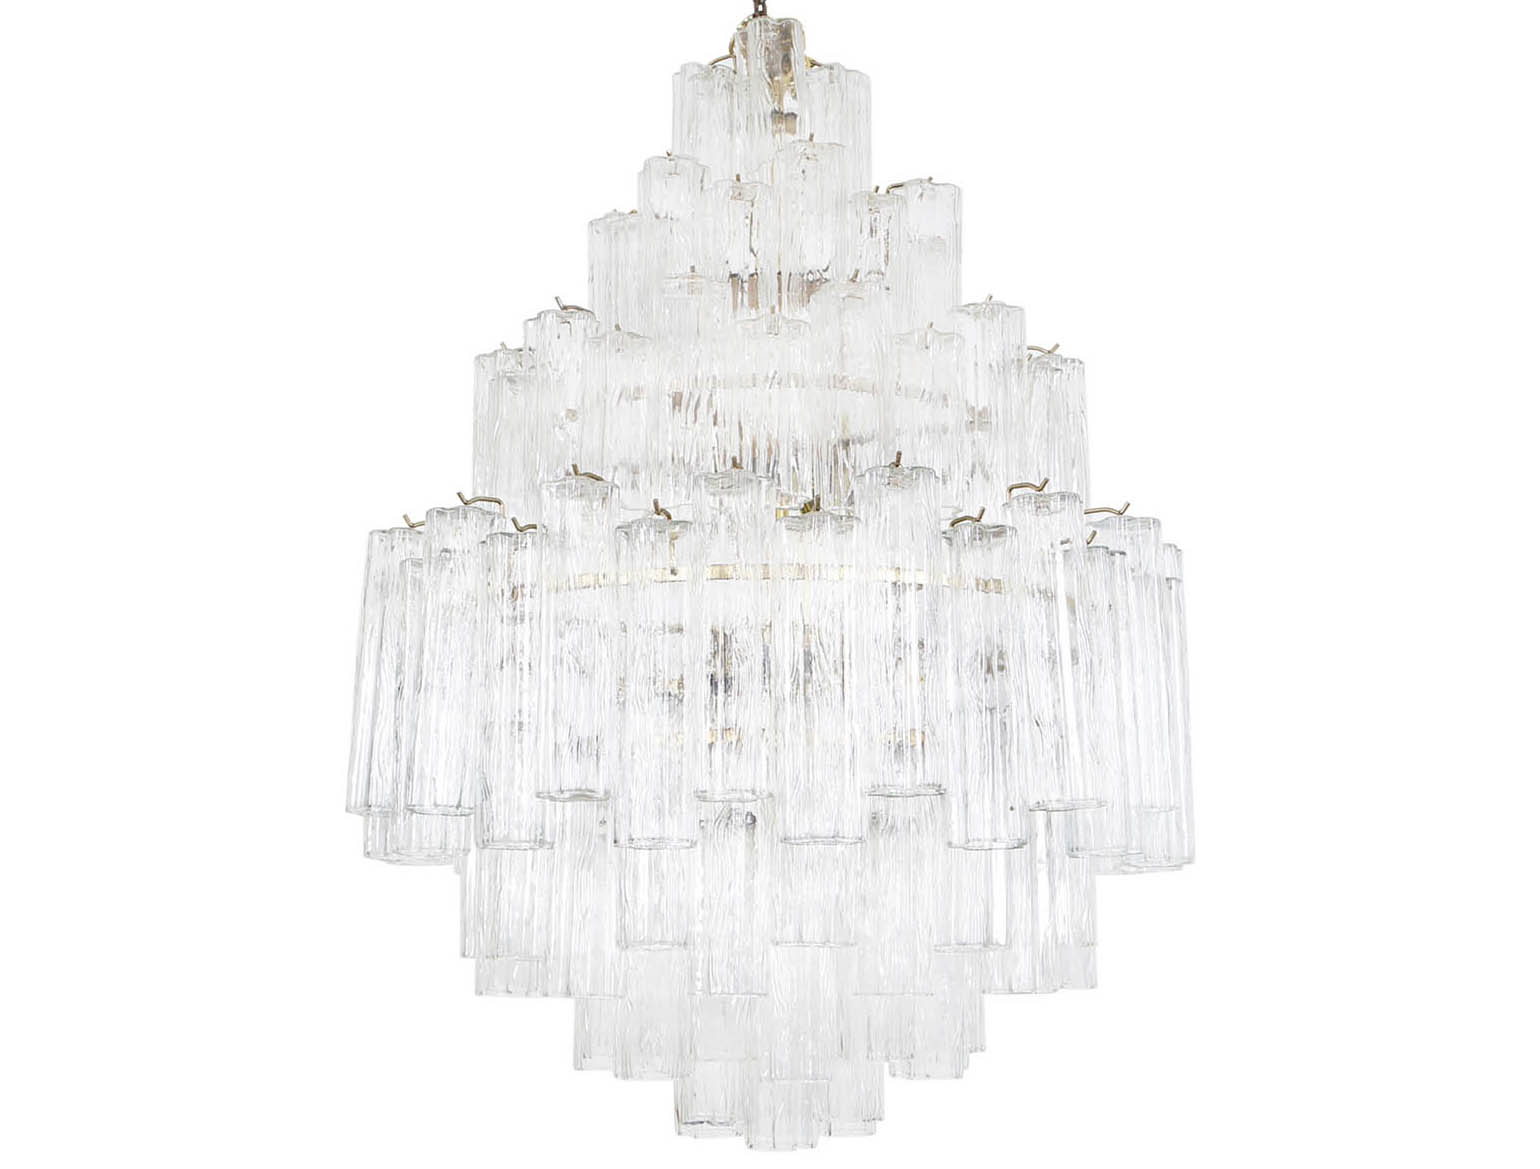 Vintage Italian Tronchi Glass Chandelier by Venini